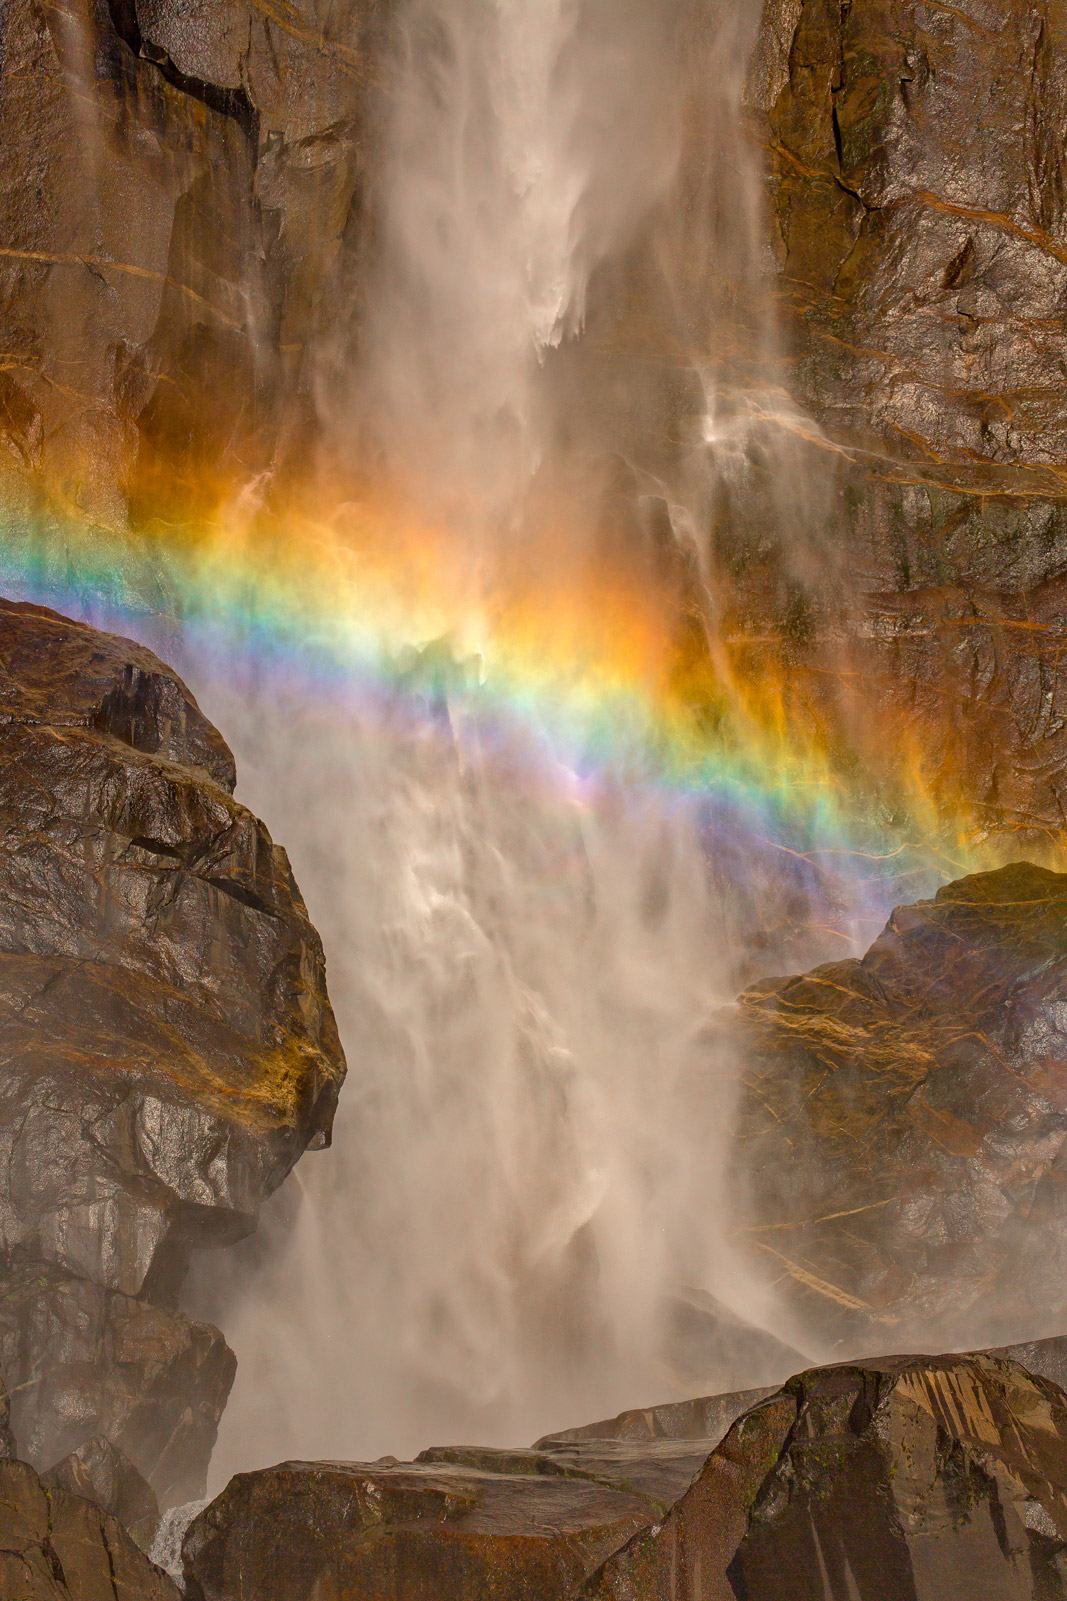 California, Yosemite, Bridalveil Falls, Rainbow